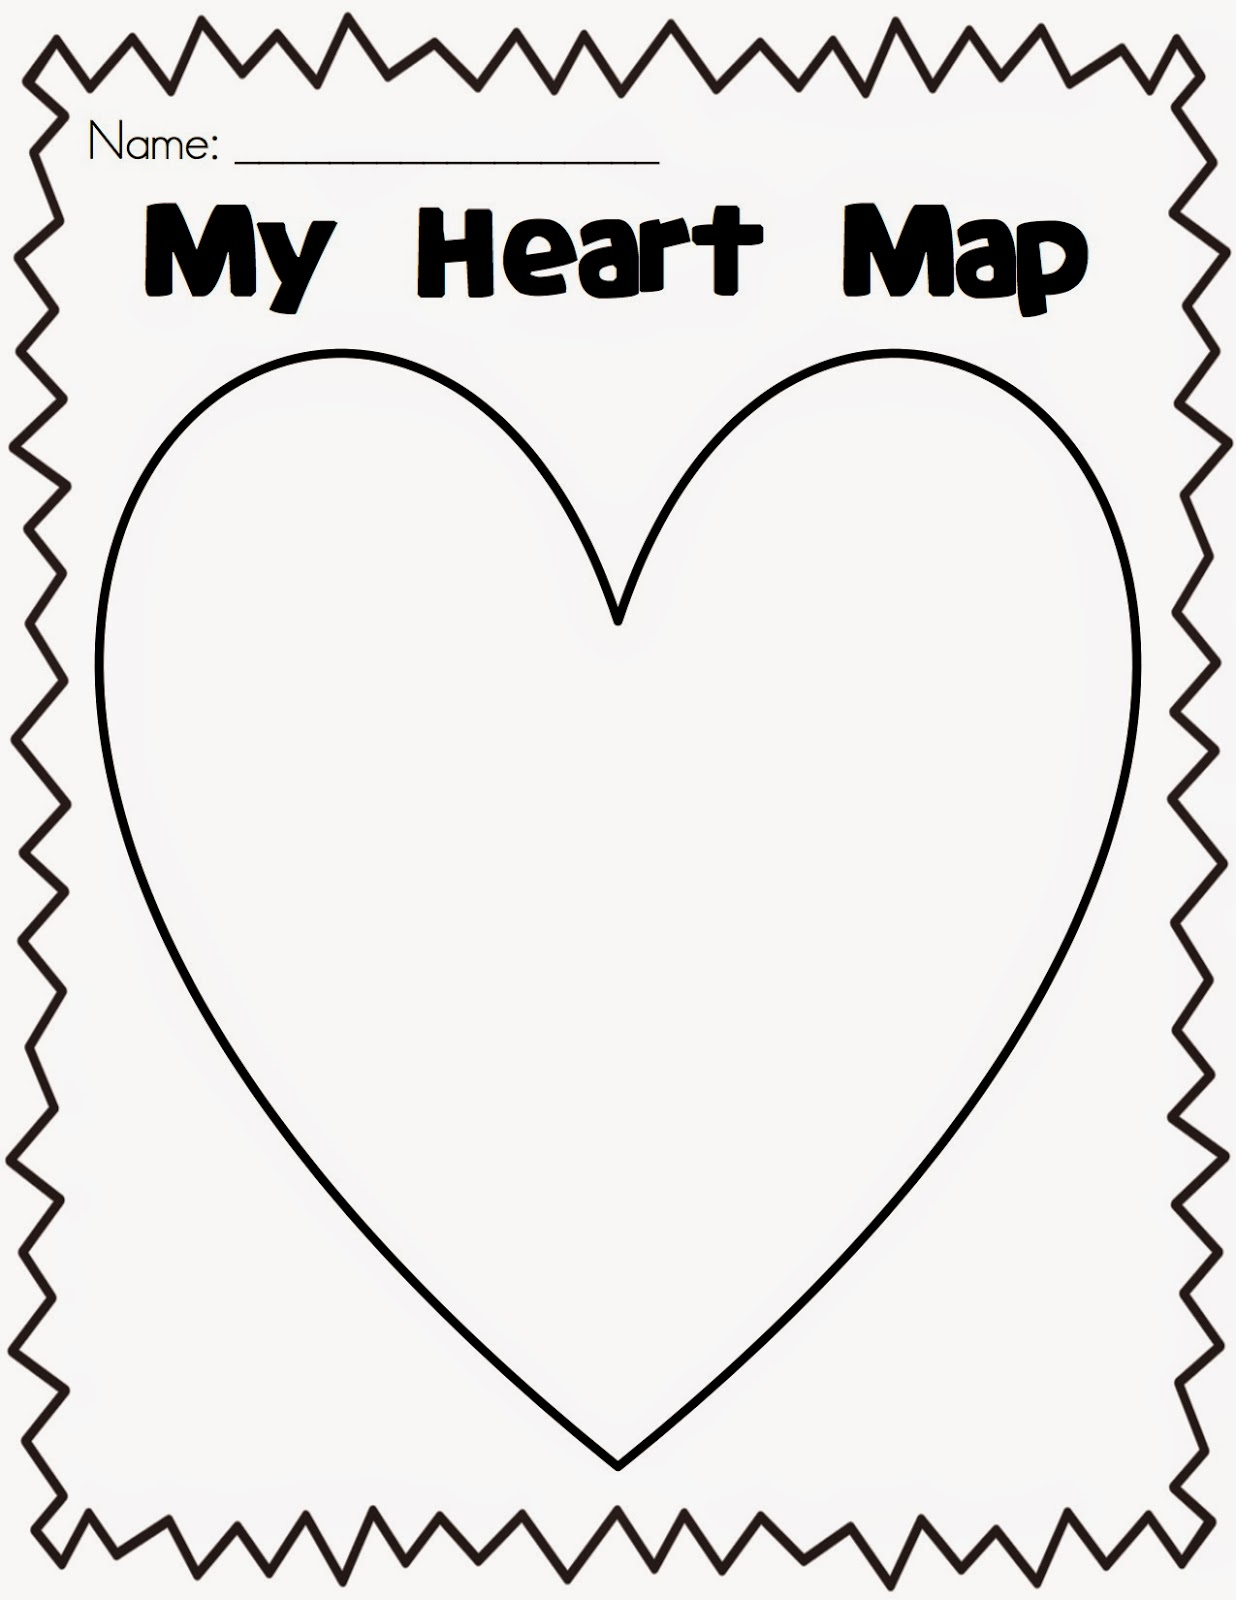 mrs dolch's pm kindy october 2014 Heart Map For Writers Workshop throughout the year during writing workshop, we will use our heart maps to write stories about things we know and love what a productive day we had during heart map for writers workshop